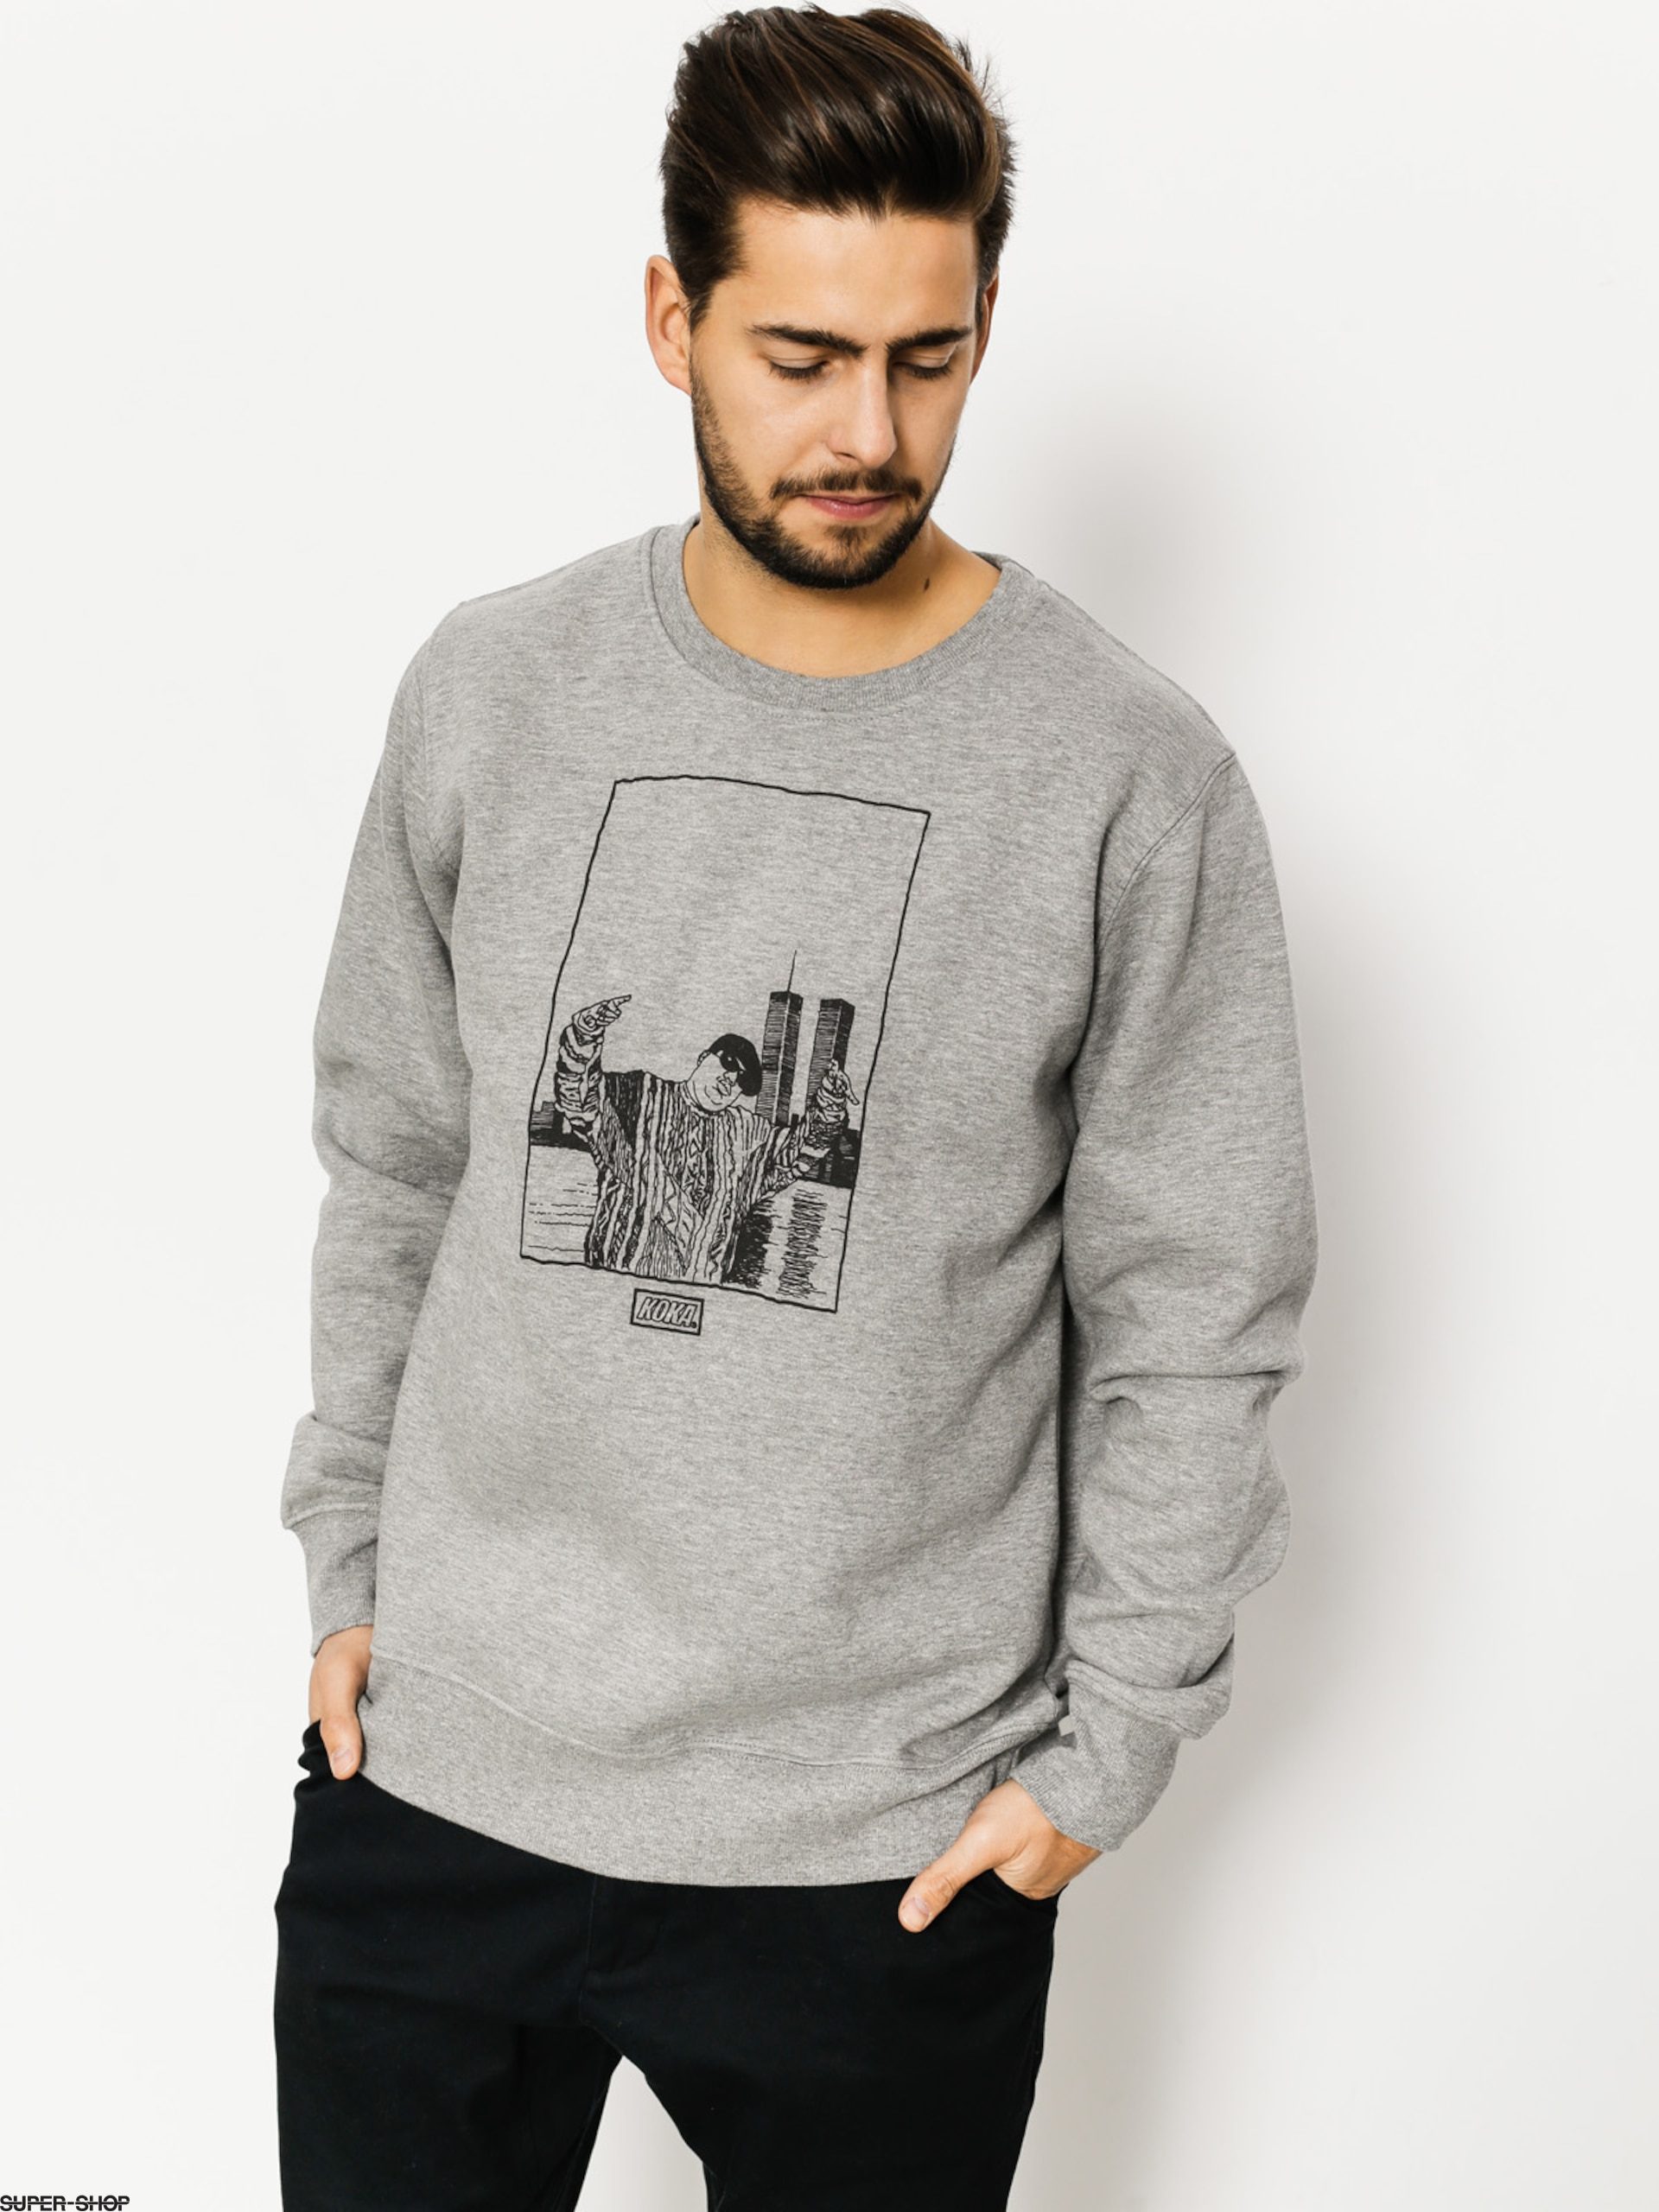 Koka Sweatshirt Notorious